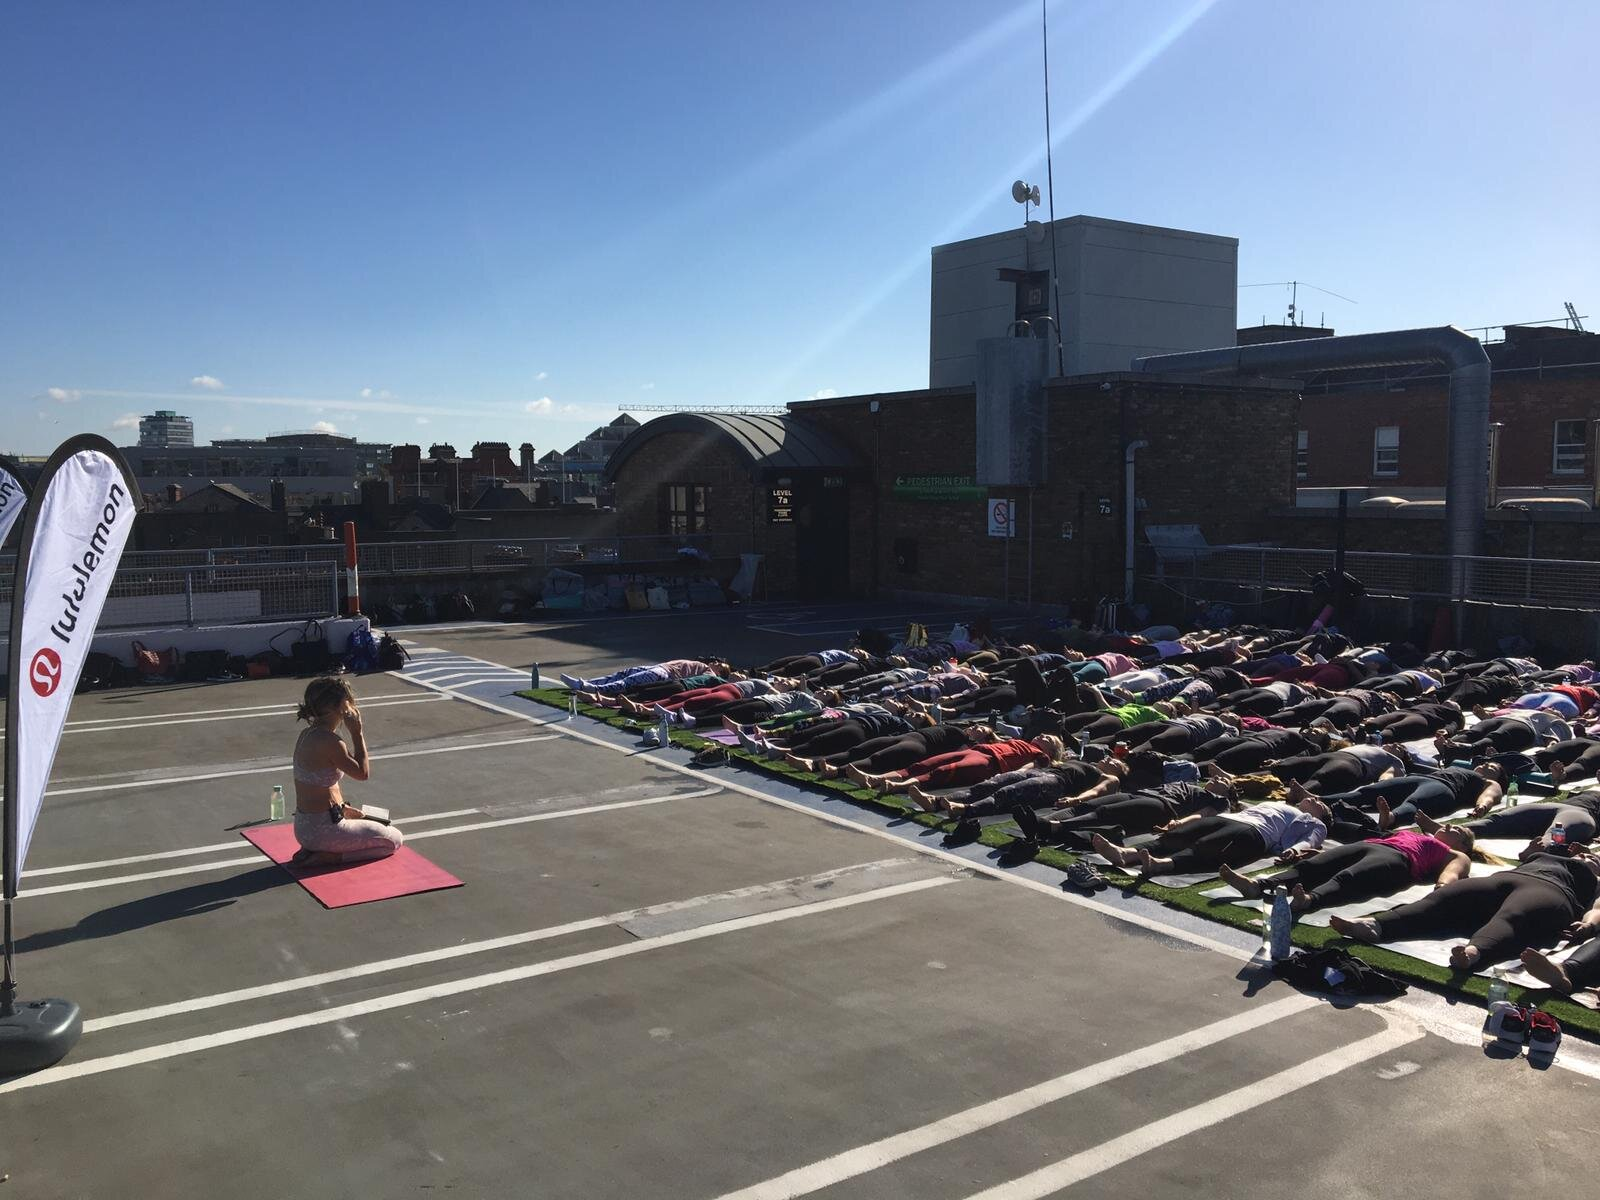 international yoga day with lululemon - Yoga with Sarah on the rooftop of Brown Thomas June 2019. Read about How Yoga Improved My Life in the writing section.